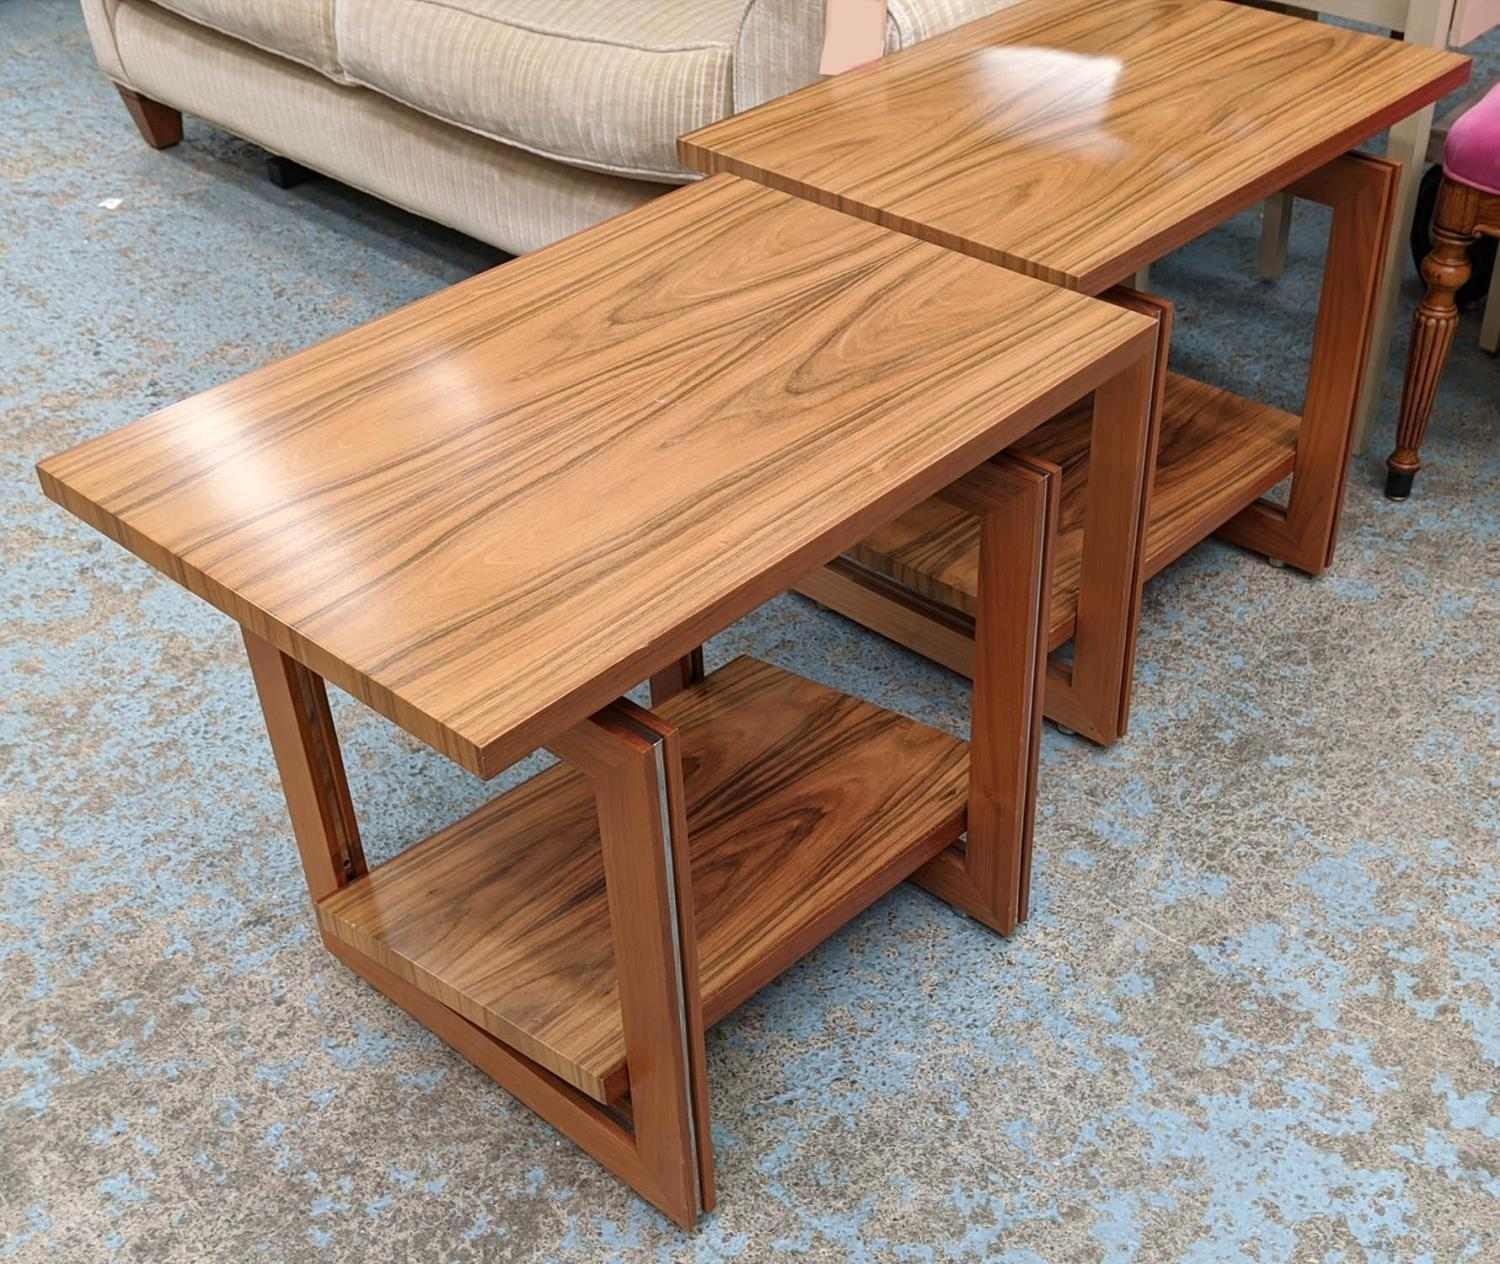 LINLEY HELIX SIDE TABLES, a pair, by David Linley, 65cm x 45cm x 55.5cm. (authenticated by linley) - Image 2 of 4